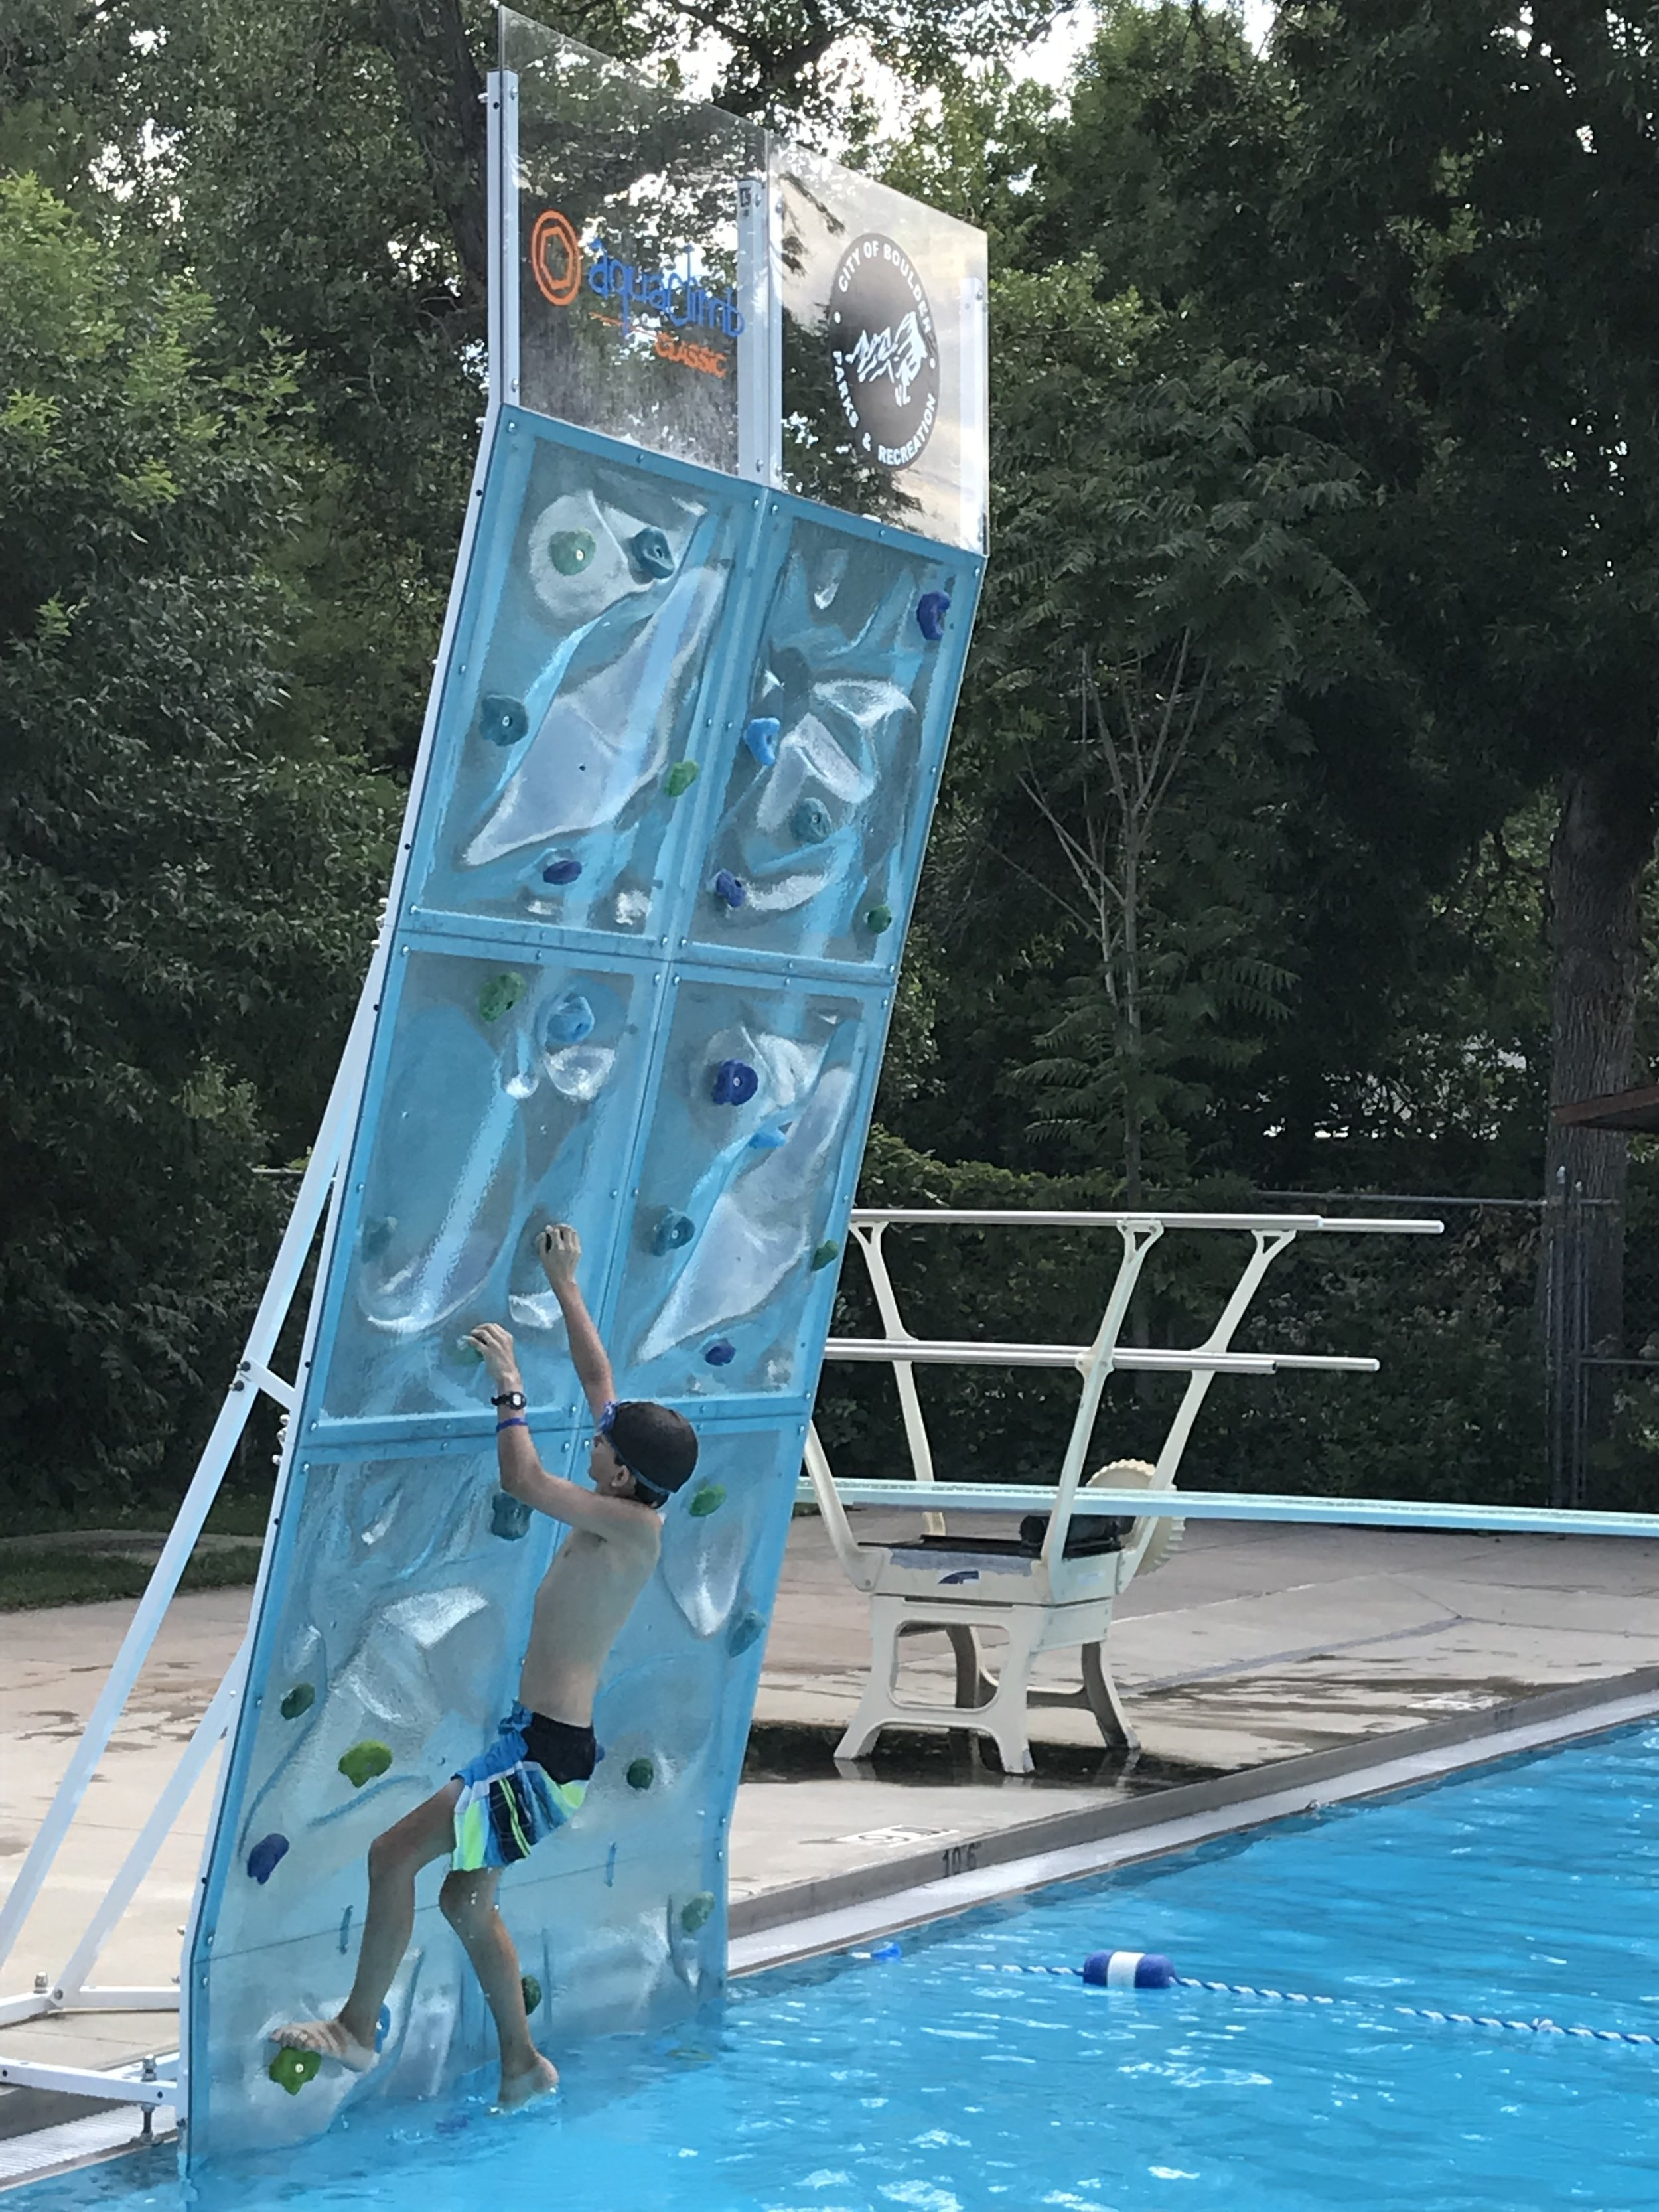 Have you ever seen a climbing wall towering over the deep end of a pool? We hadn't, but boy, was that fun!!